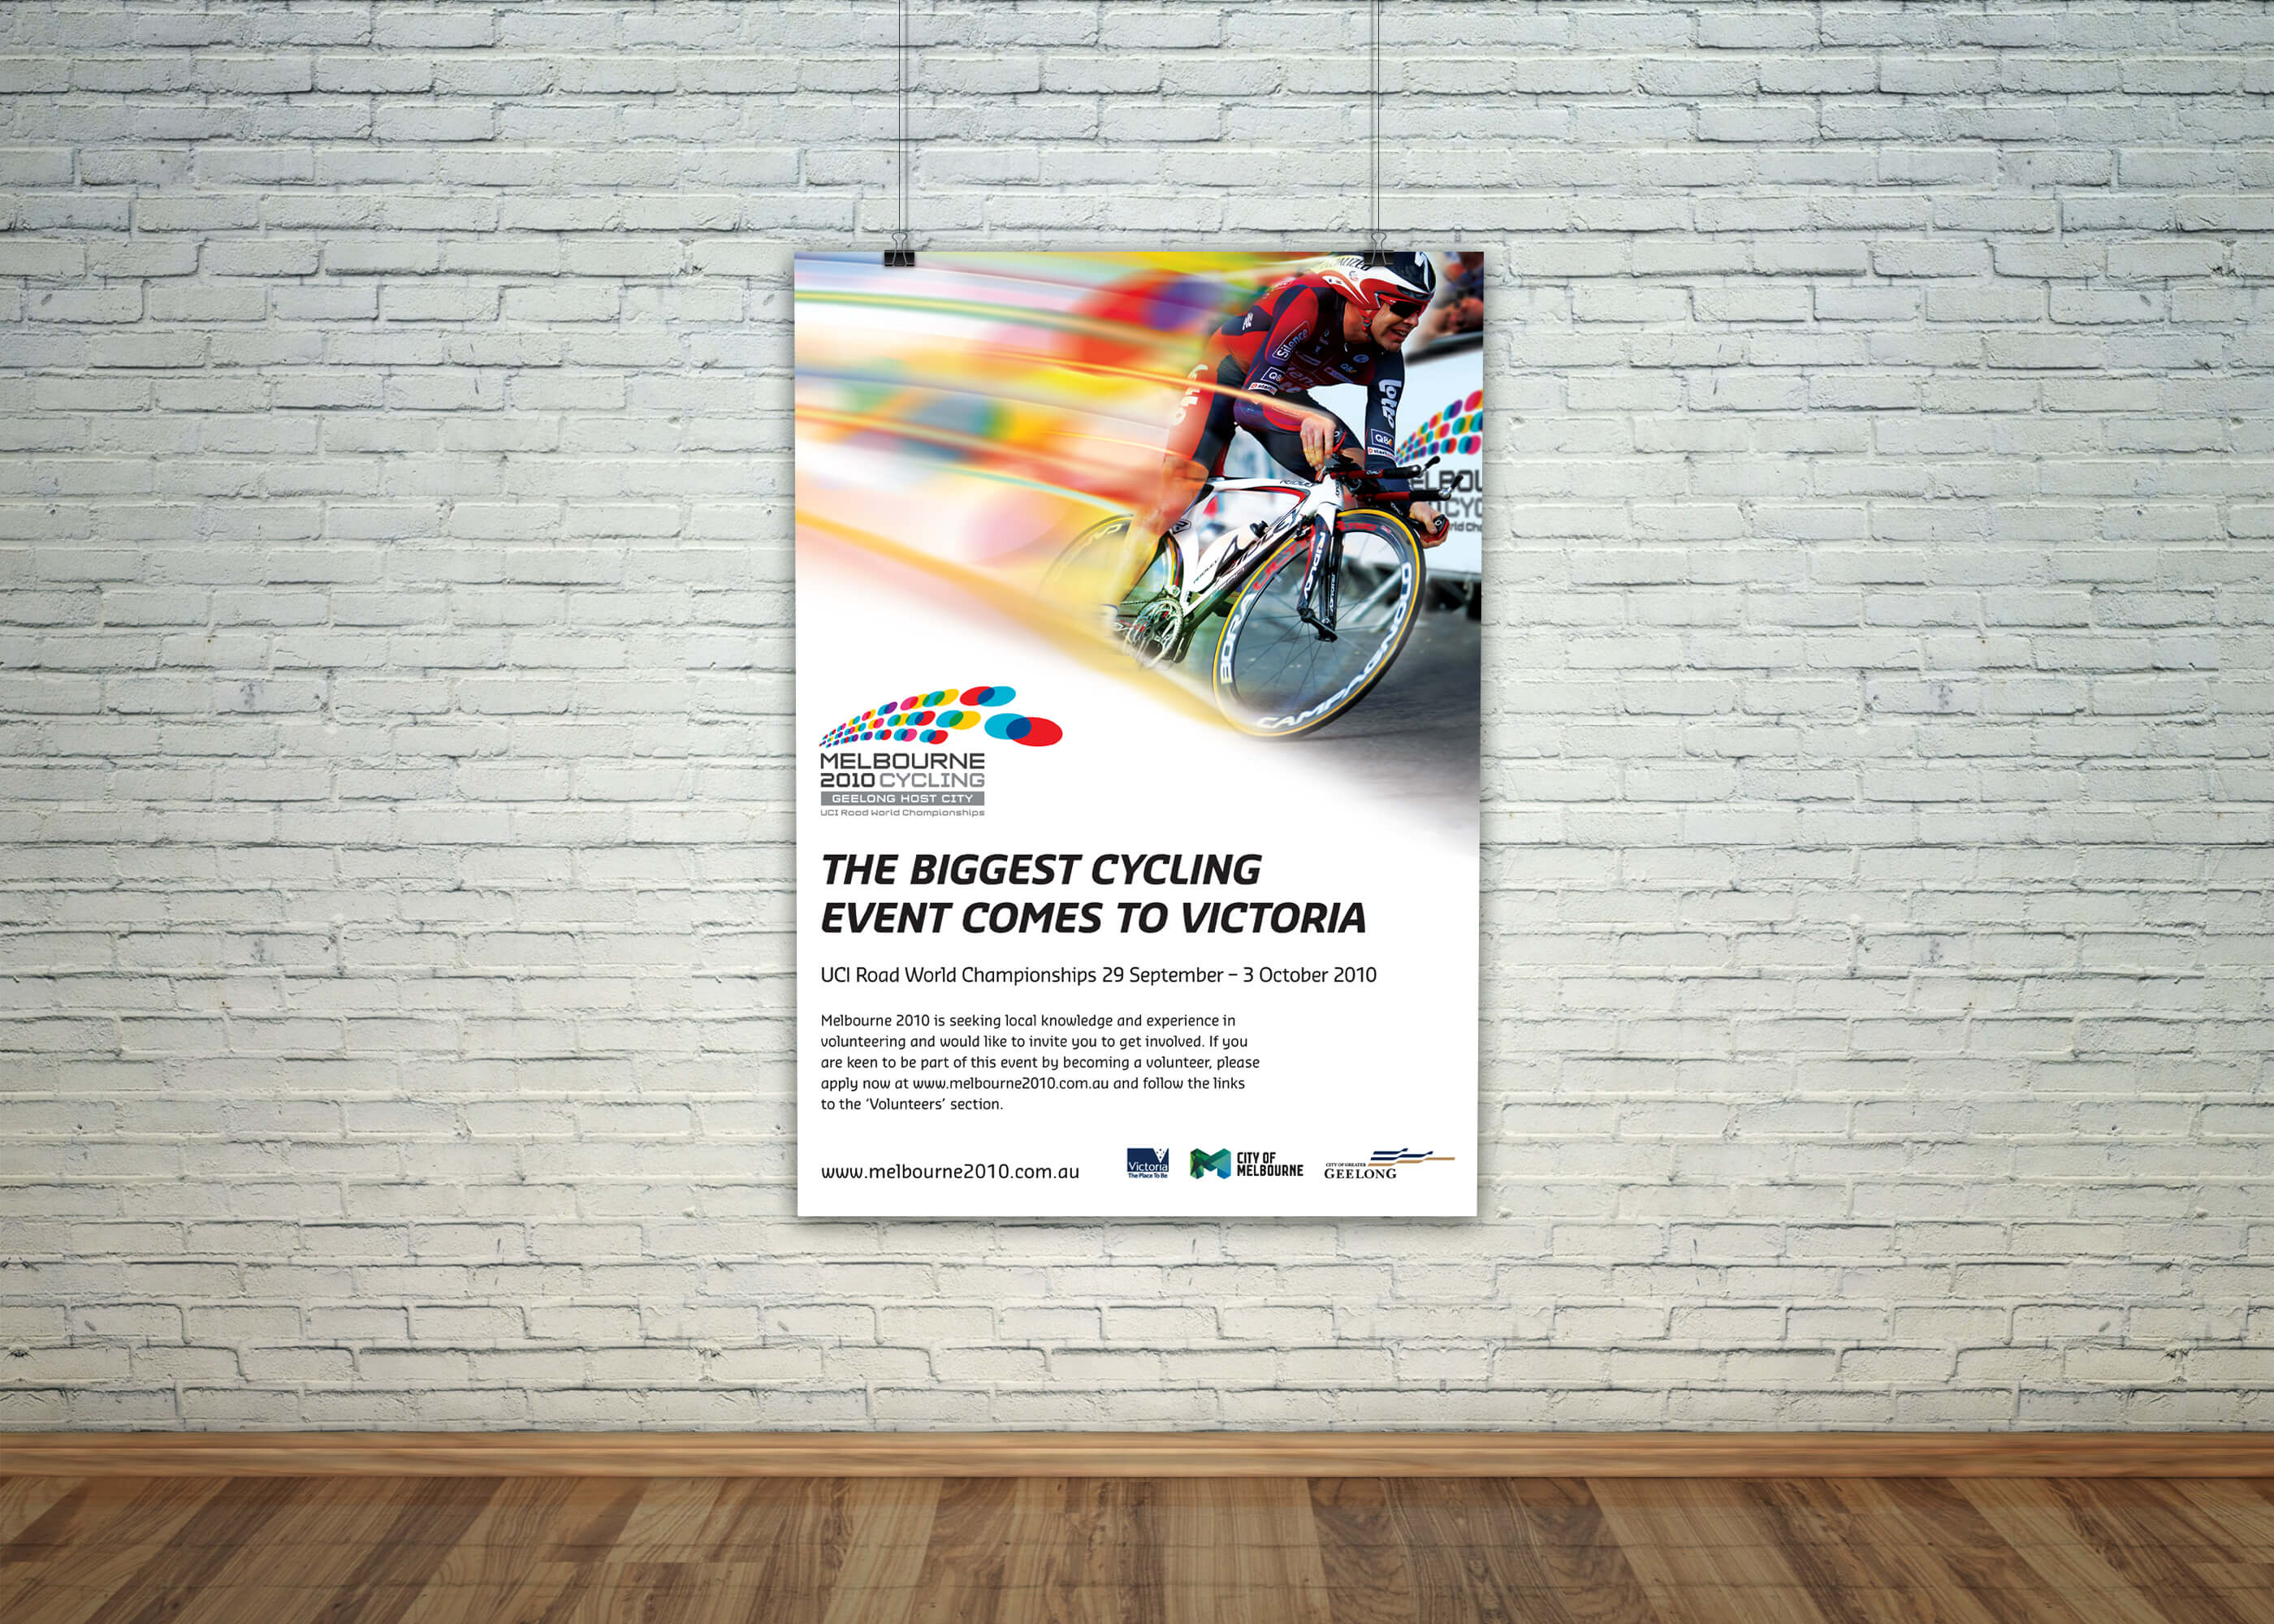 Melbourne cycling poster 5 melbourne cycling poster 5 stopboris Gallery